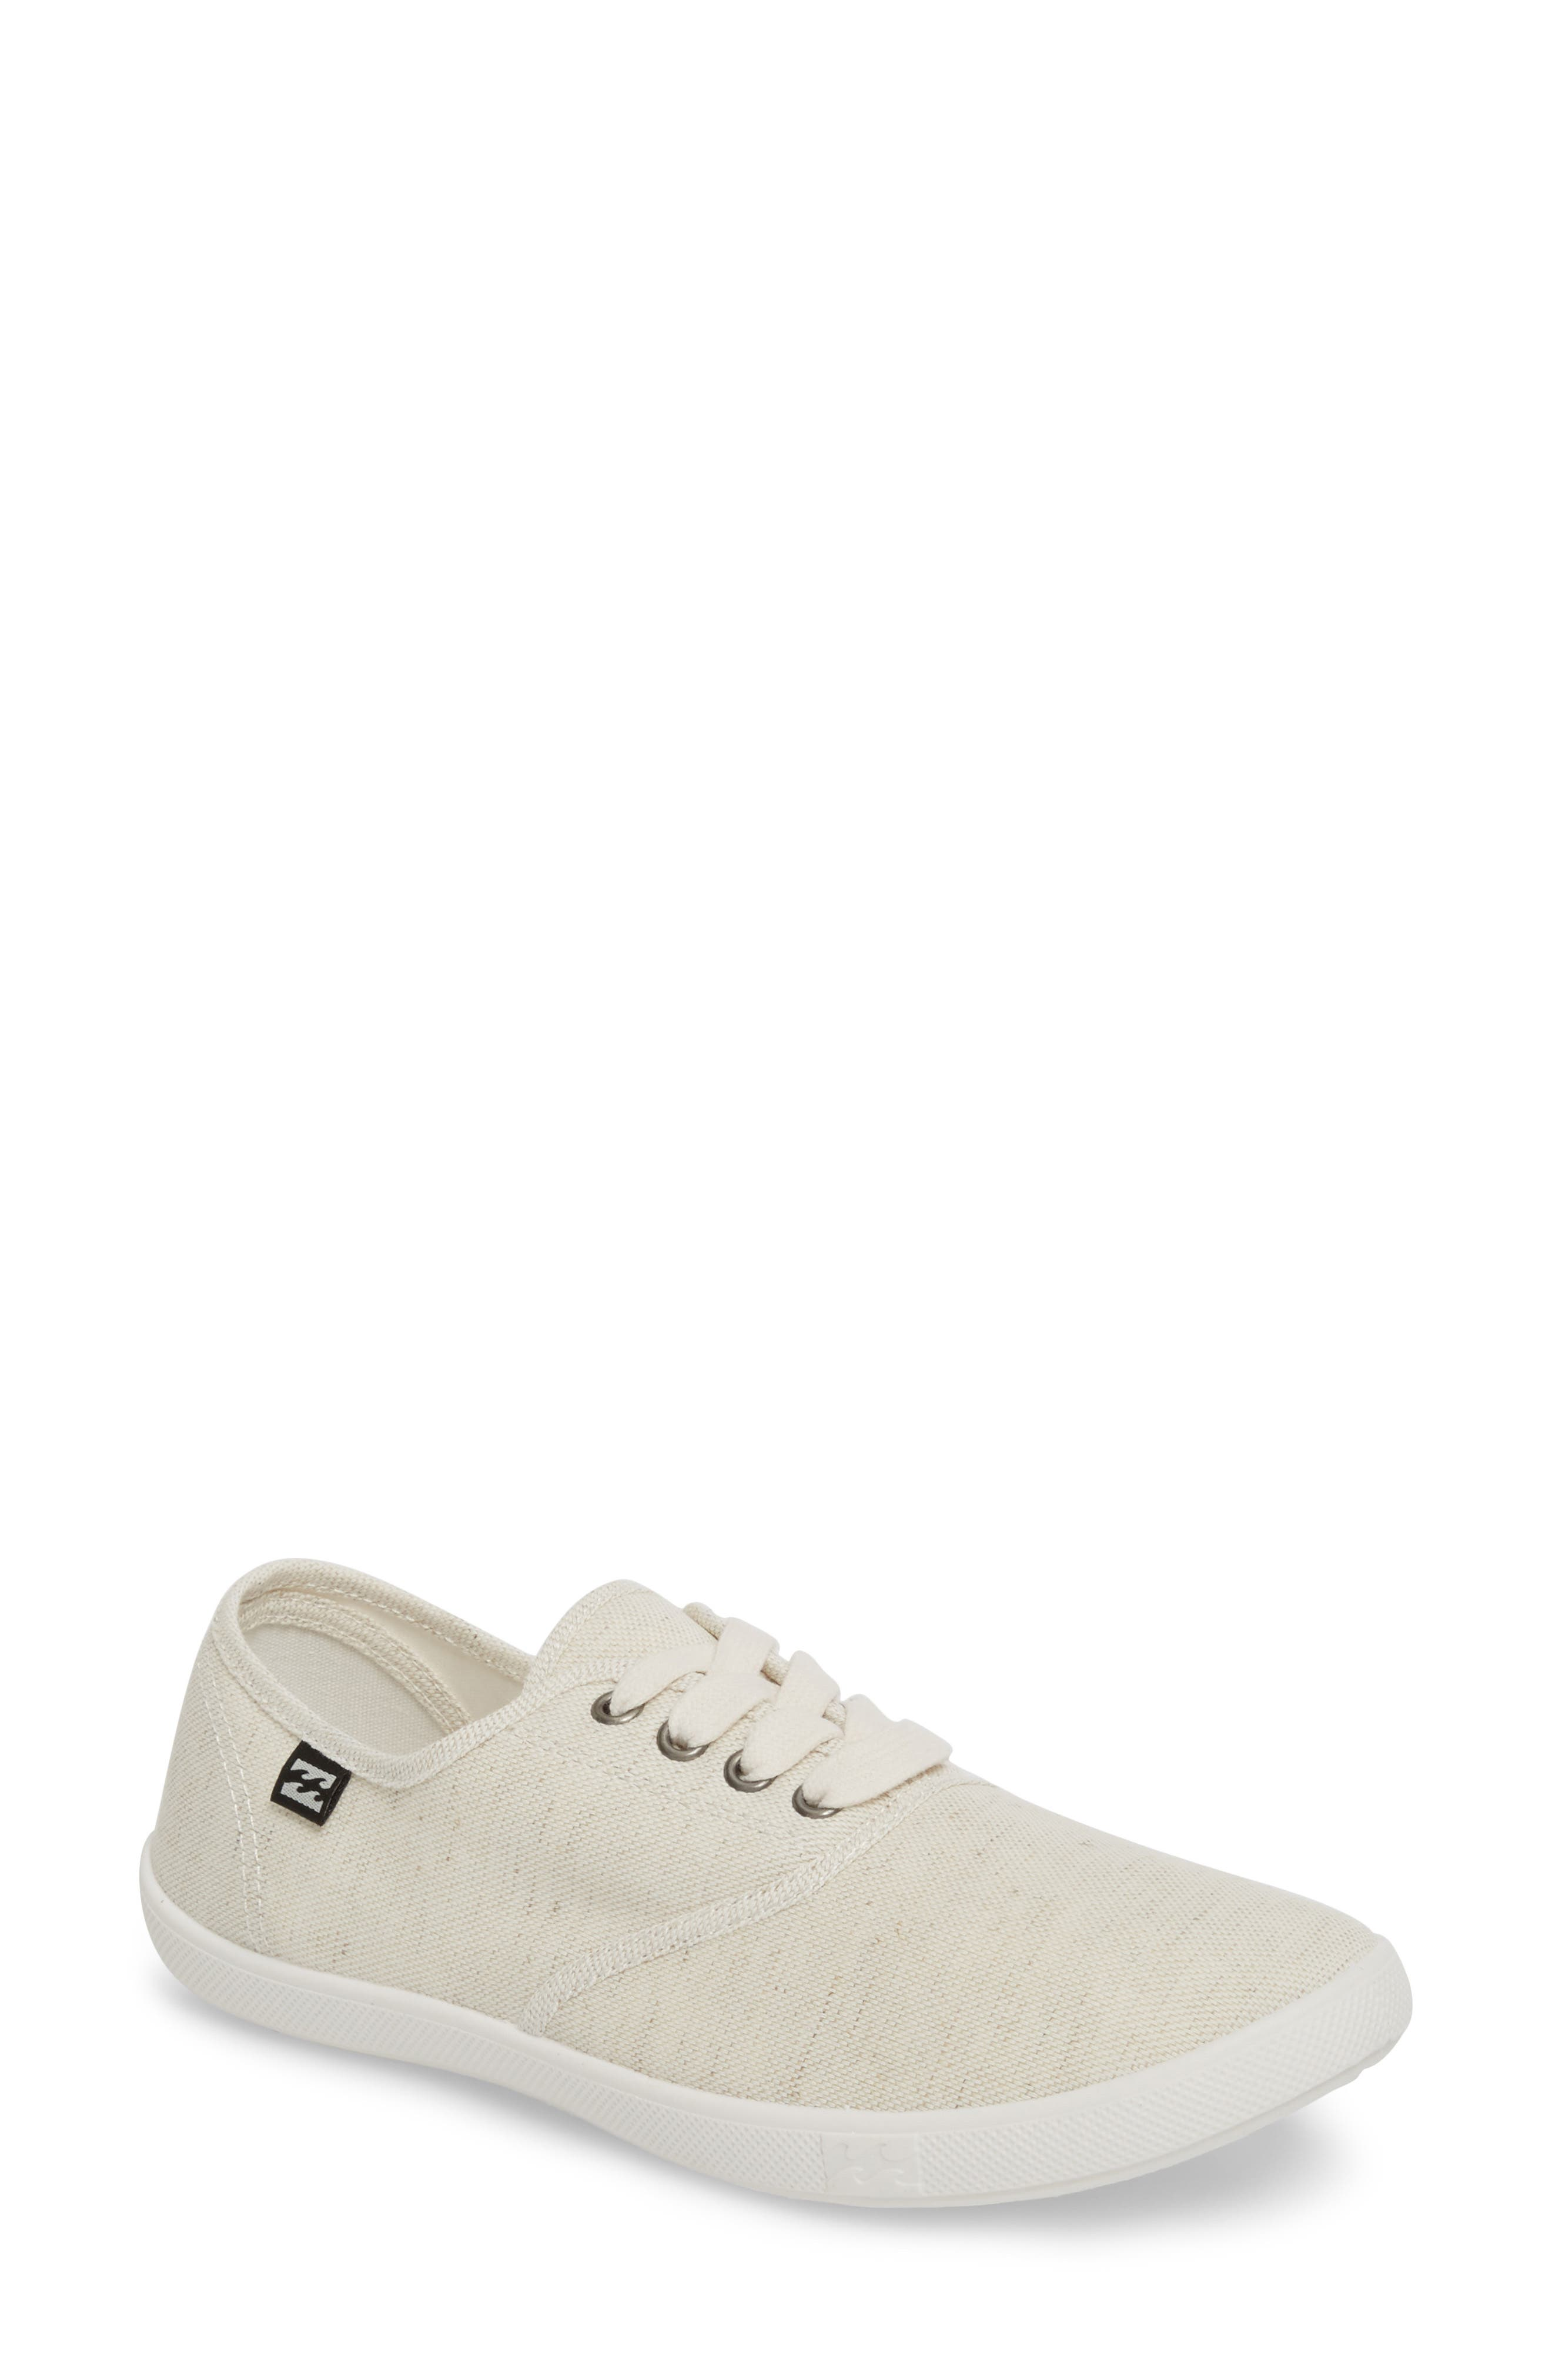 Addy Sneaker,                             Main thumbnail 3, color,